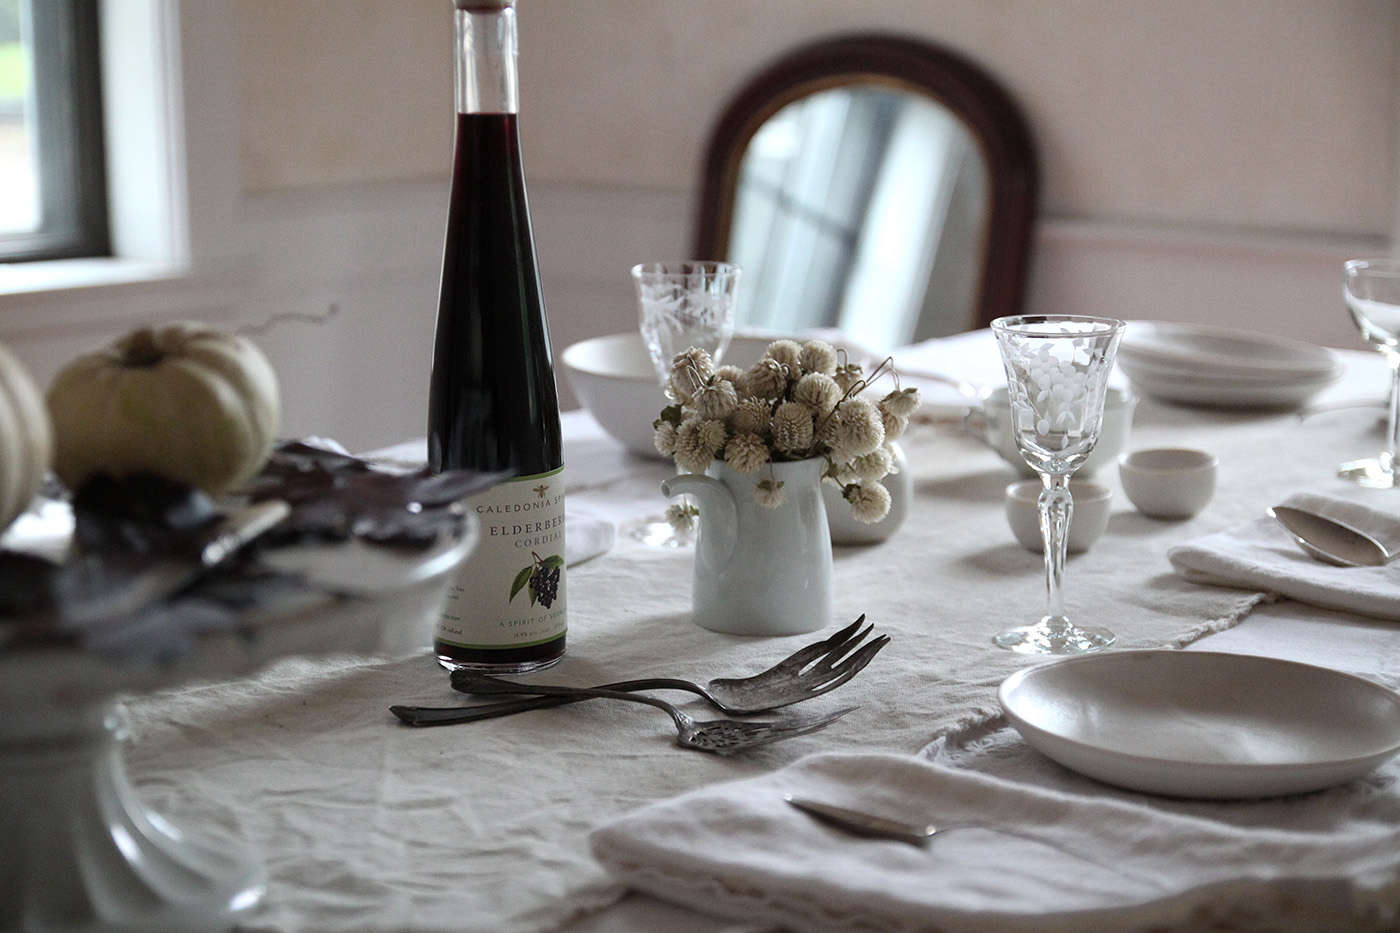 Haunted%20Table%20with%20Black%20Leaves%2C%20flowers%2C%20by%20Justine%20Hand%20for%20Remodelista